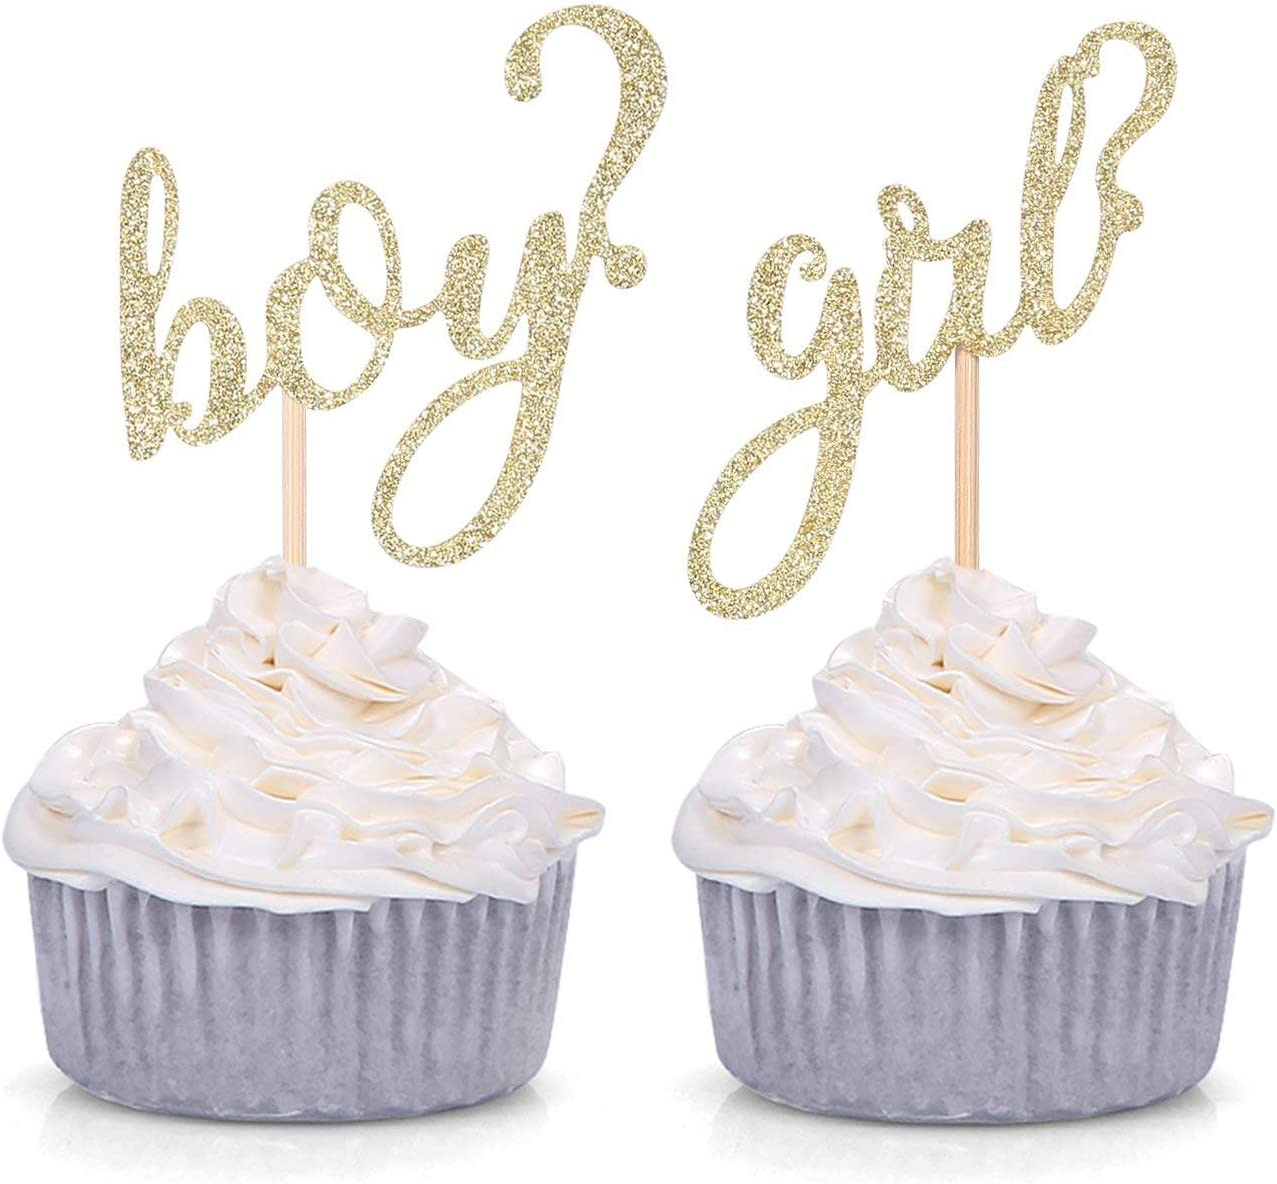 Karoo Jan Oh Baby Cake Topper Gender Reveal Baby Shower Happy Birthday Party Decoration